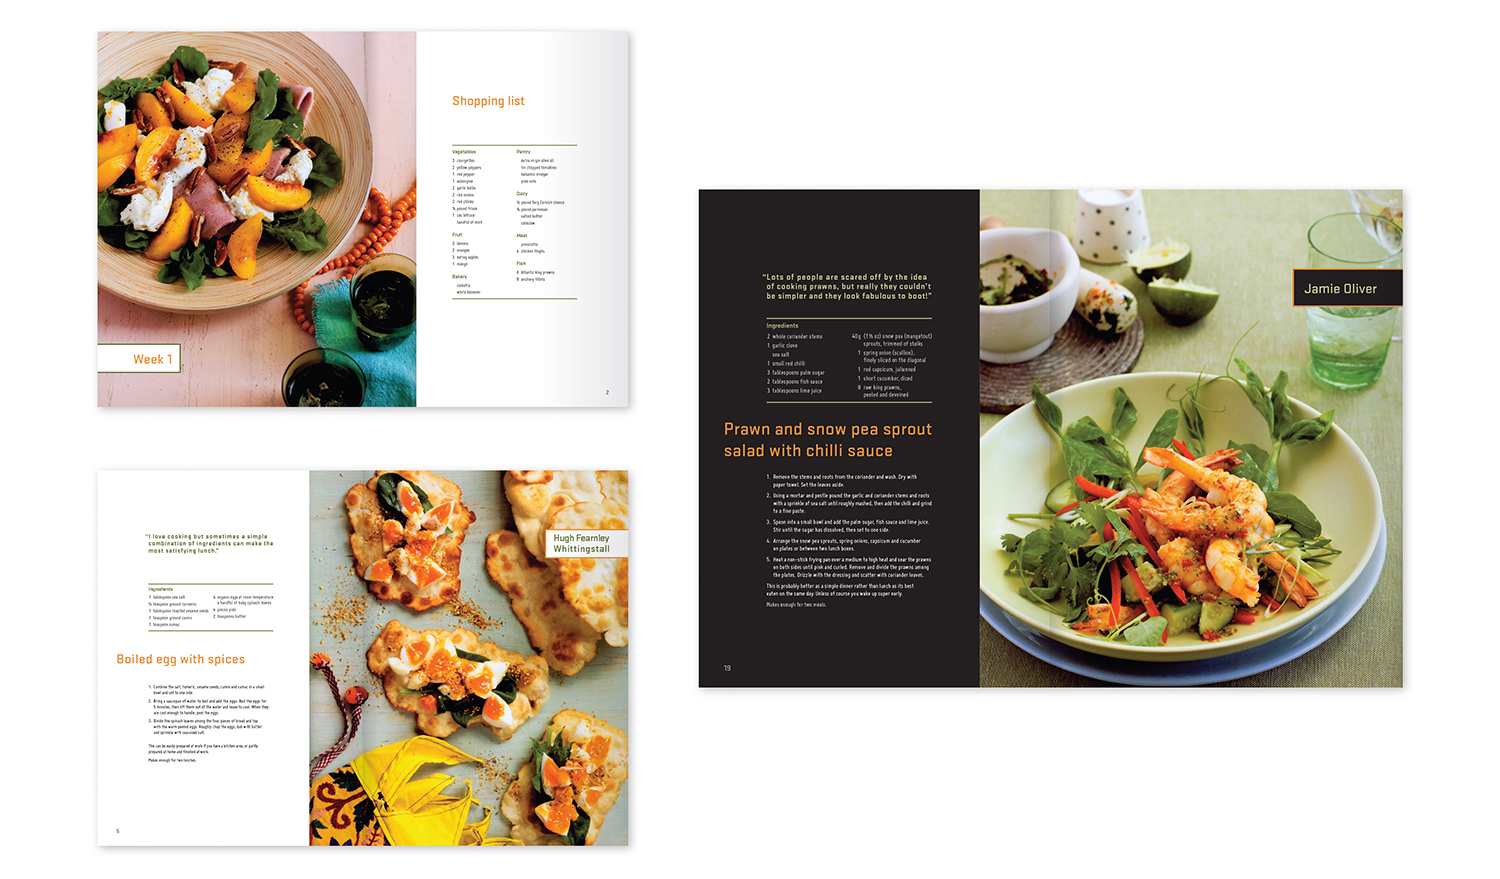 No Time To Cookbook  - The cookbook is aimed at young professionals who love food but don't have much time to prepare their meals. It required a contemporary feel, without being too feminine or conservative. The cookbook is clear and easy to use with bold use of photography.  (Student work)